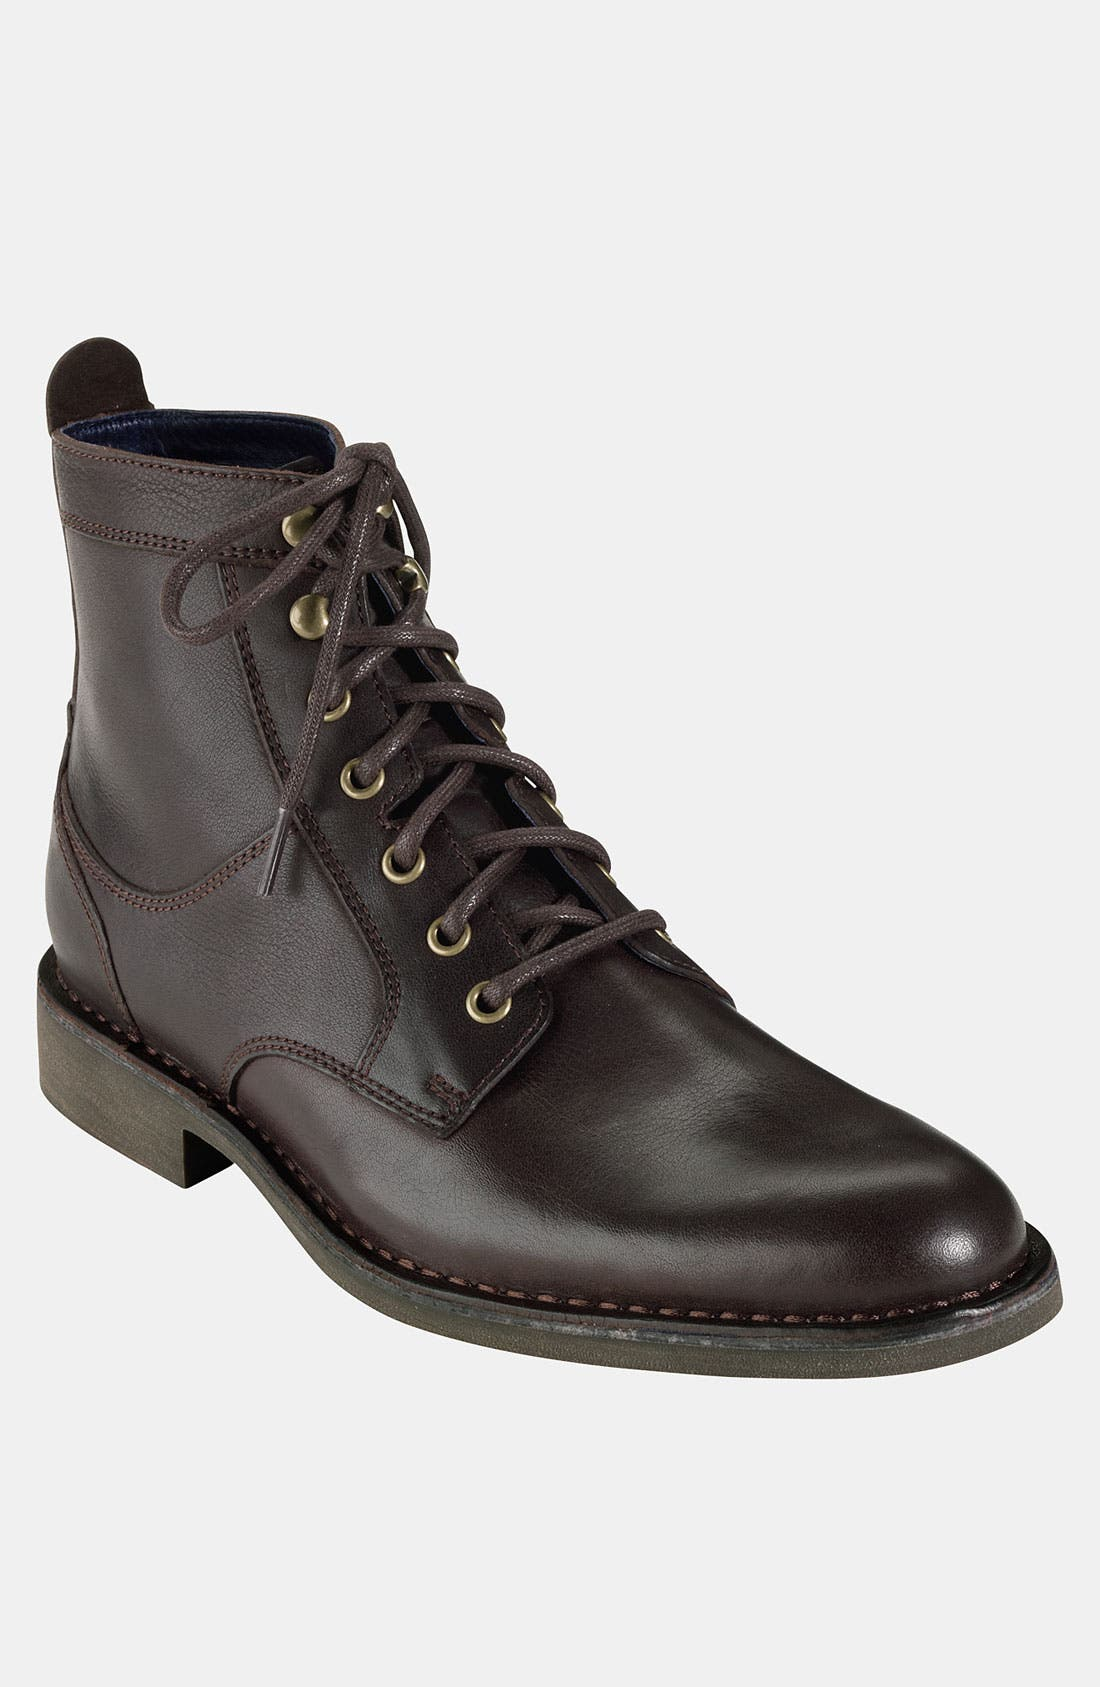 Alternate Image 1 Selected - Cole Haan 'Air Blythe' Plain Toe Boot